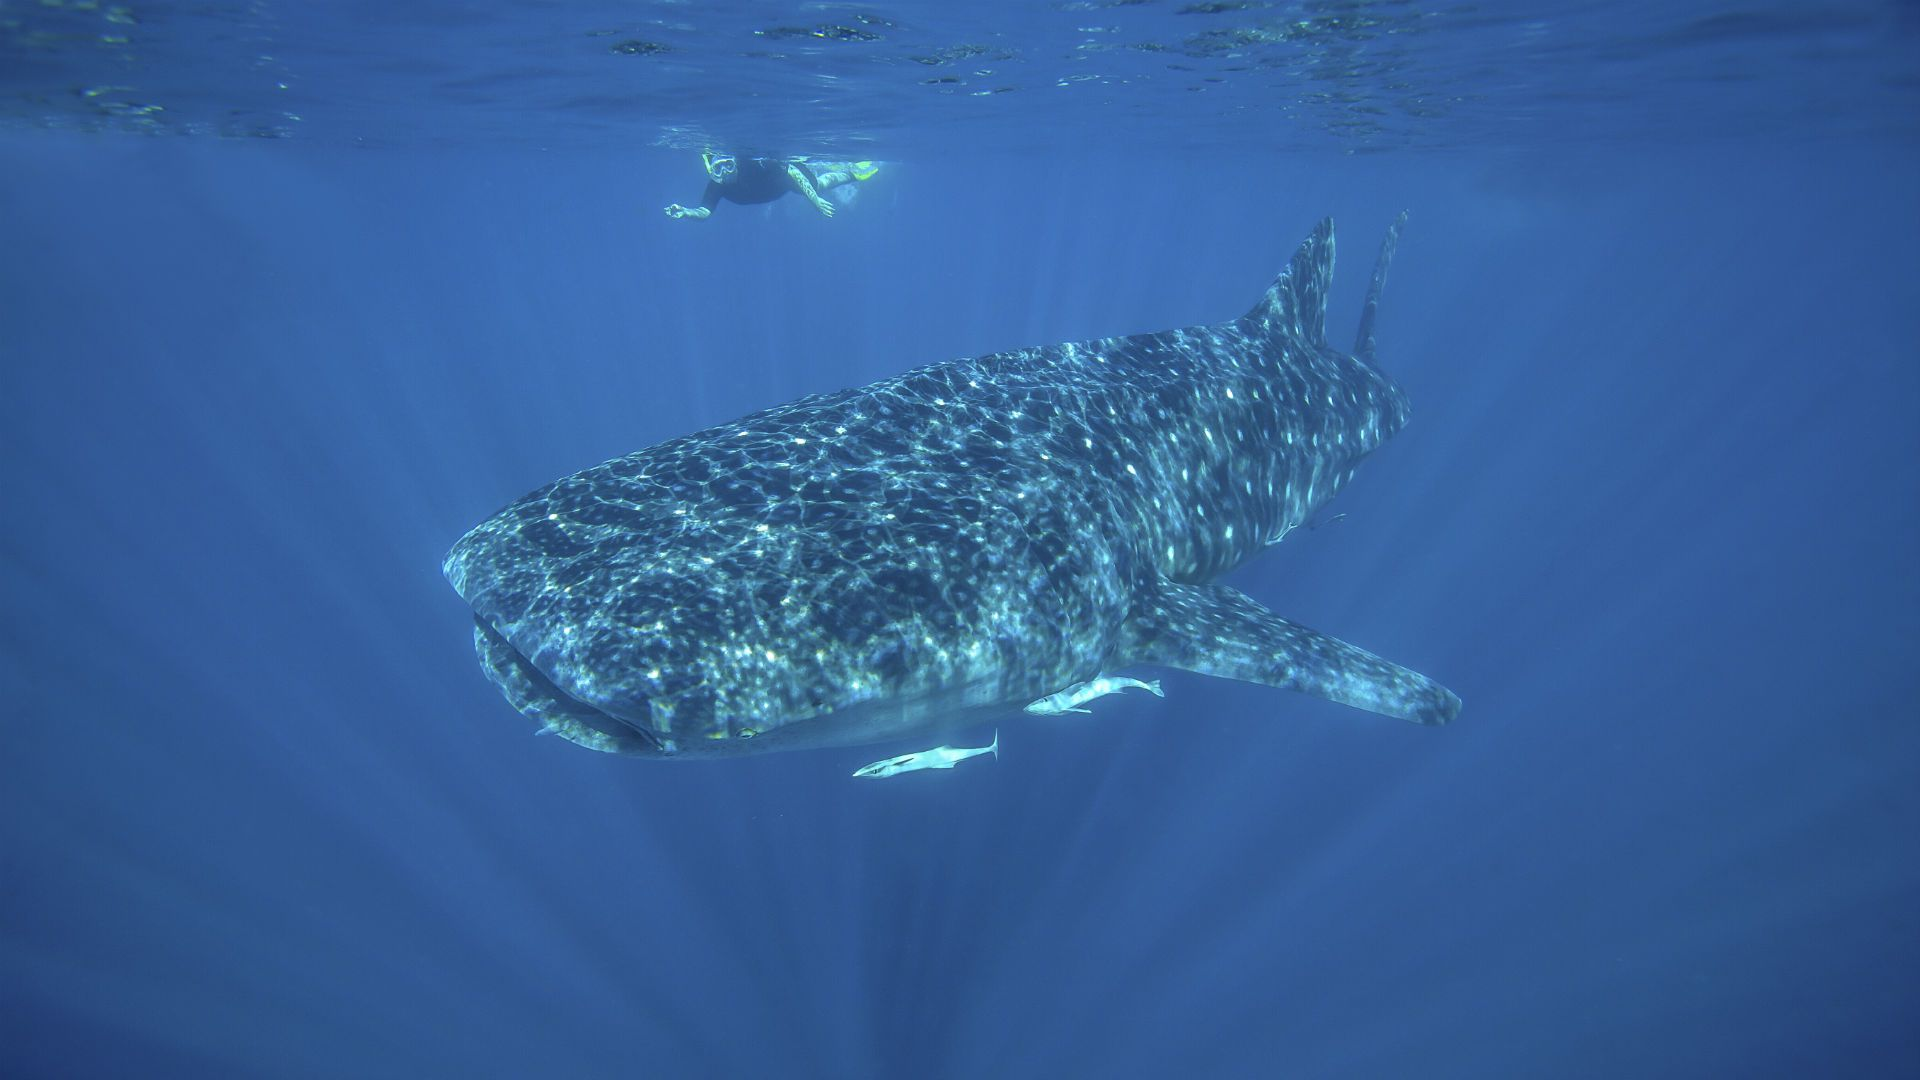 There are few experiences as awe-inspiring as swimming with a giant whale shark.